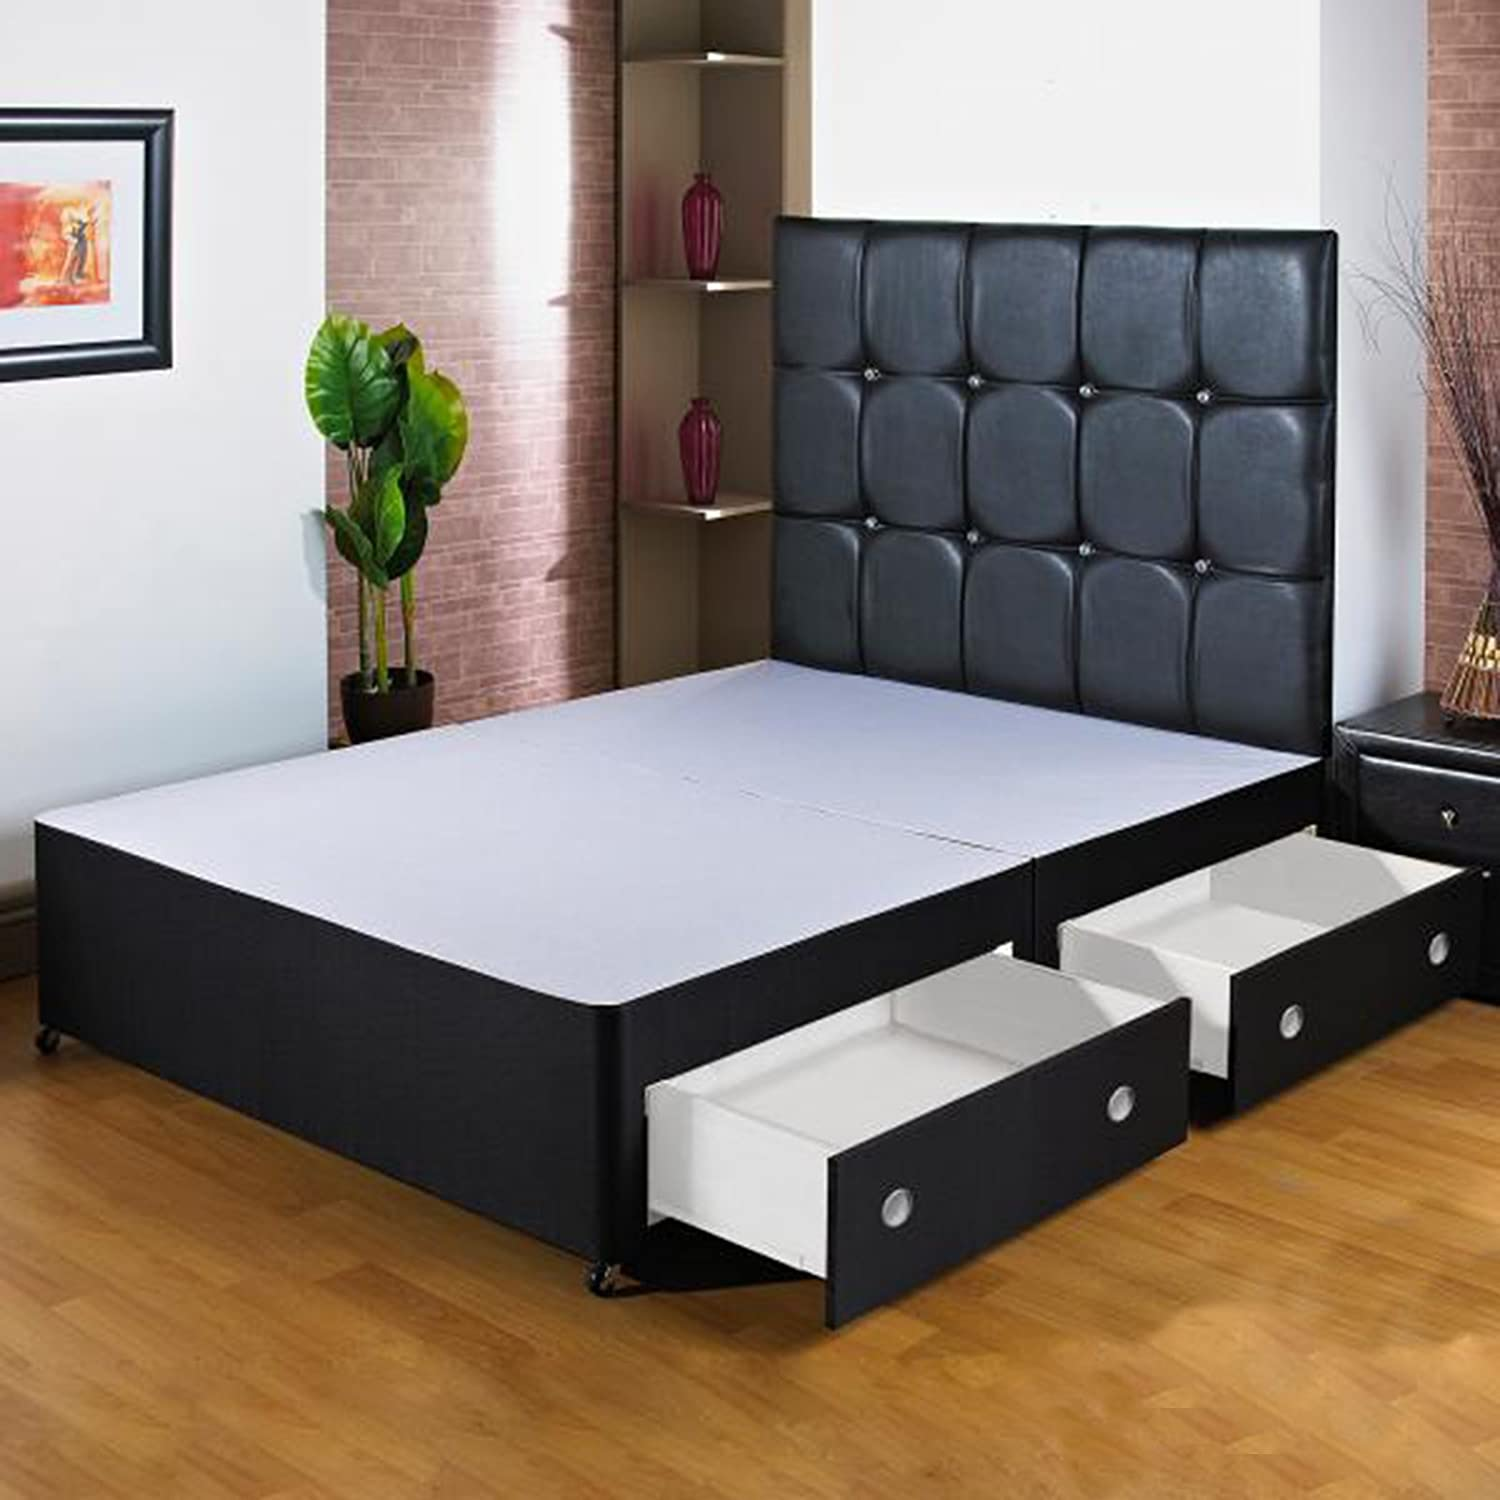 Hf4you Black Divan Base - 2Ft6 Small Single - No Storage - No Headboard